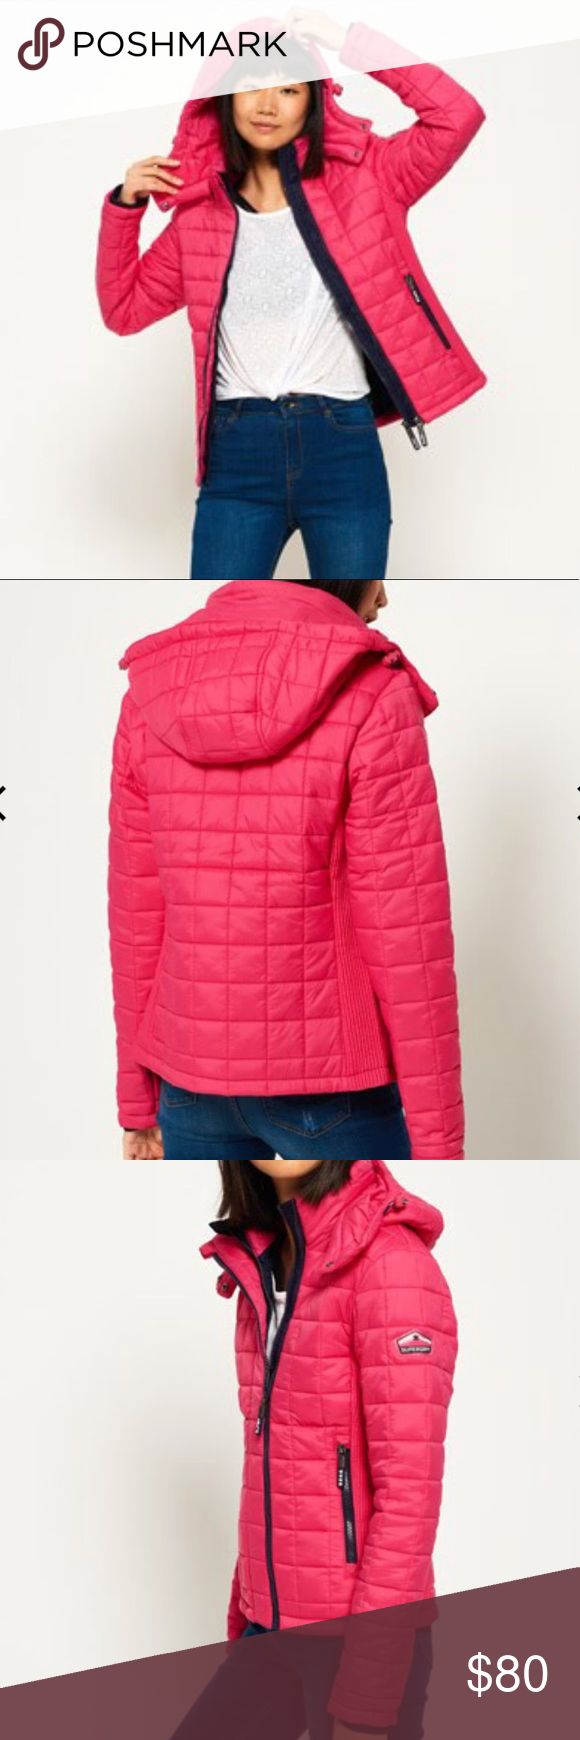 ⬇️ Flash Sale! Superdry Ladies' Jacket Hooded Pink NWT Superdry Ladies' removable hood box quilt pink jacket. Super cute slimming design. The jacket also comes with ribbed sides and multi zip fastening for a comfortable fit. SOLD-OUT size online. Superdry Jackets & Coats Puffers